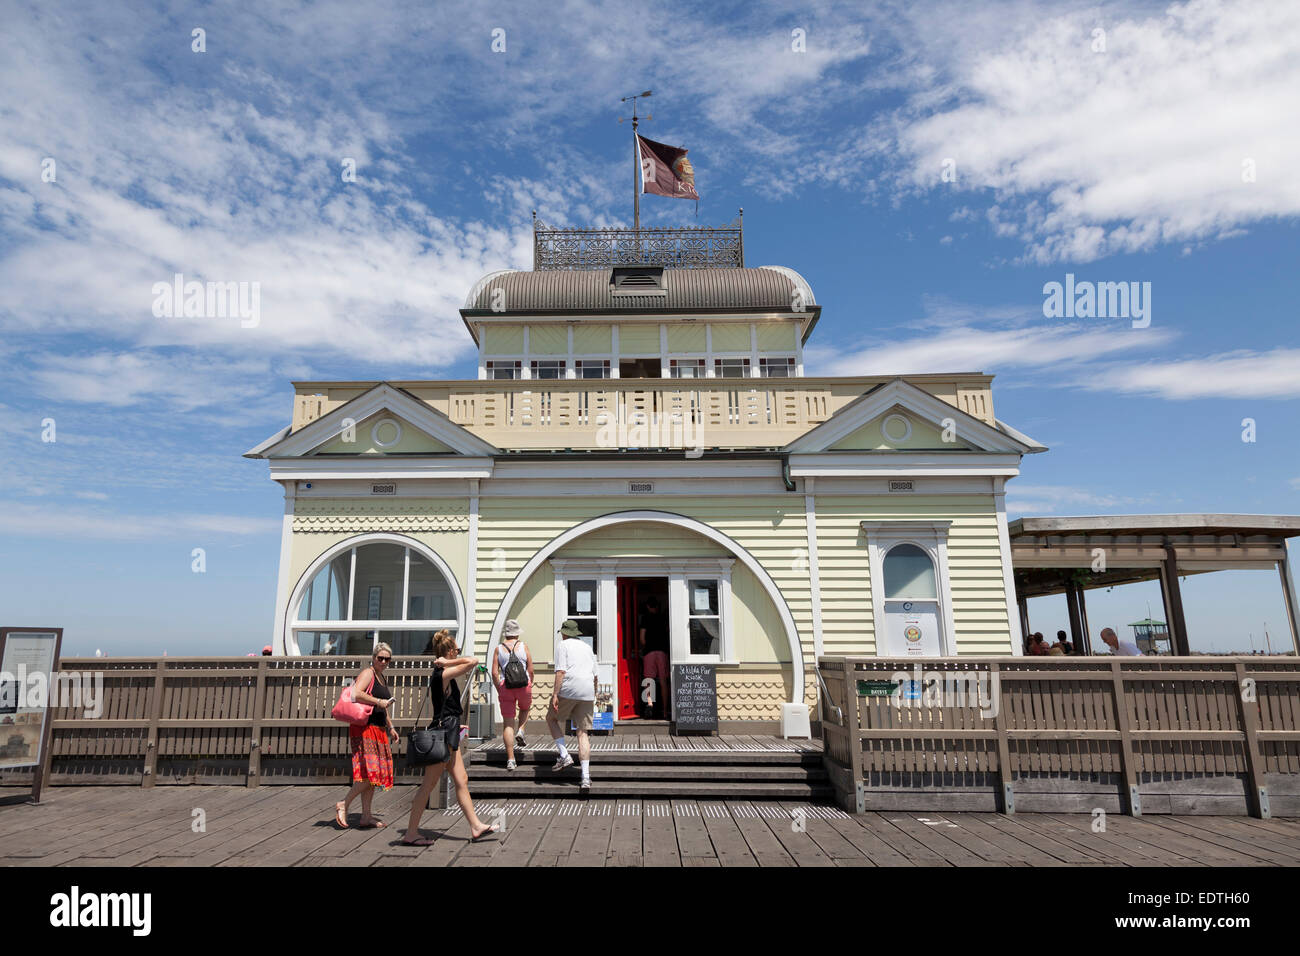 St Kilda's newly restored tea room kiosk at the end of the pier, Melbourne, Australia - Stock Image